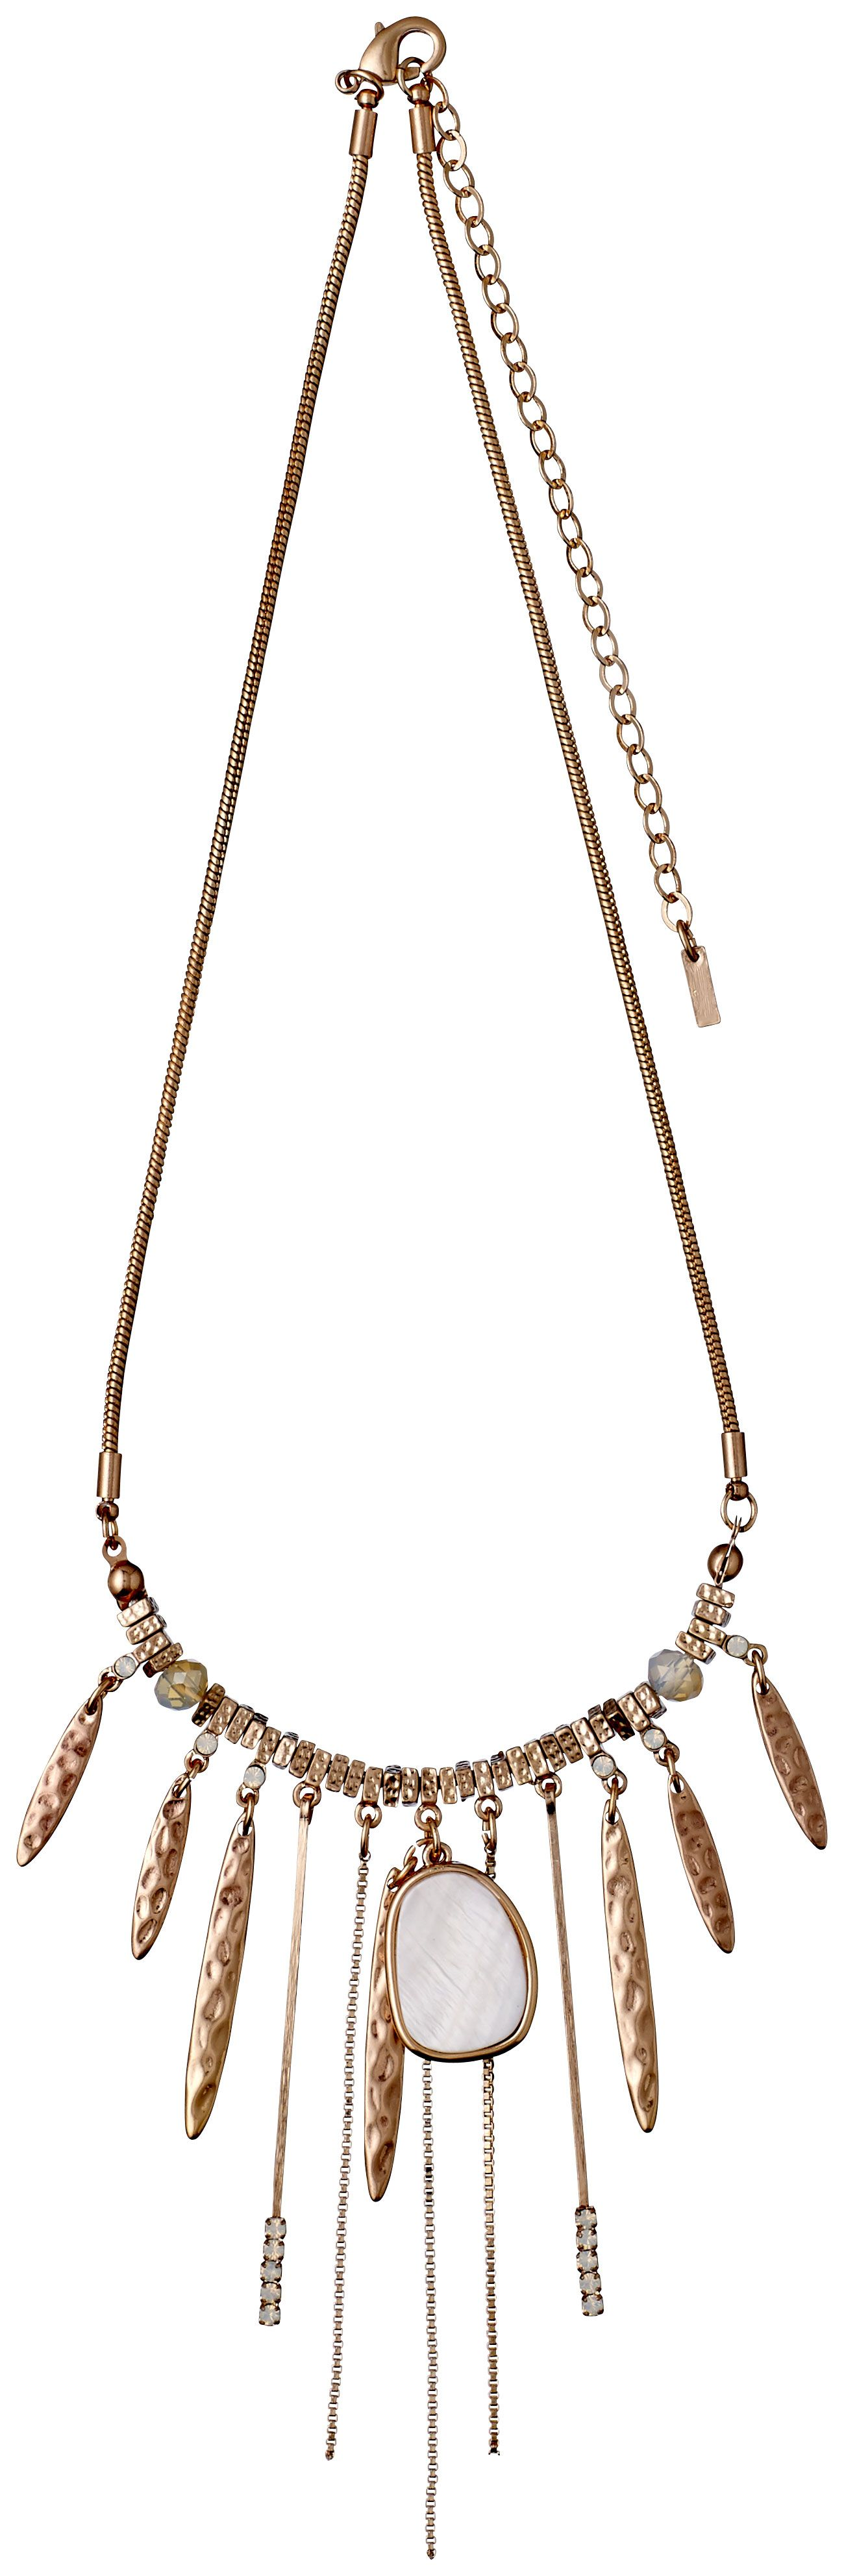 Pilgrim Deluxe Rose Gold Collarbone Necklace House of Fraser